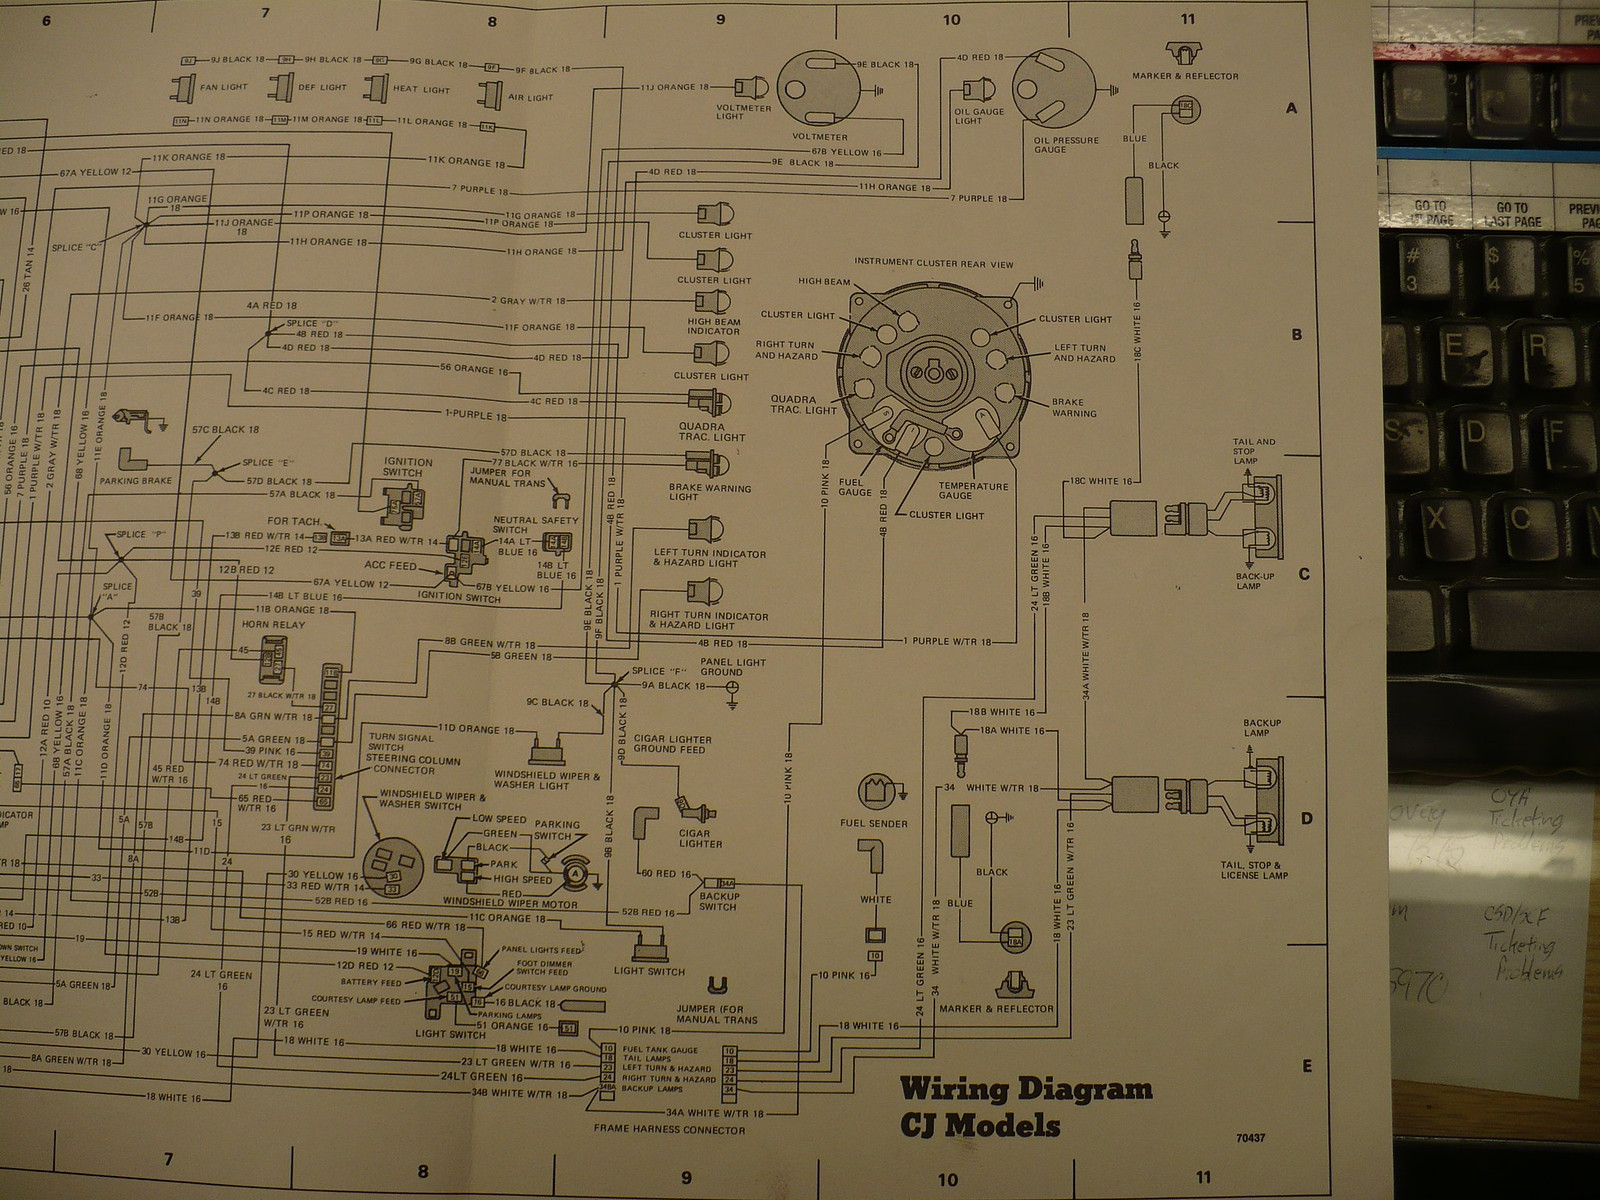 1978 Cj 5 Wiring Diagram Needed